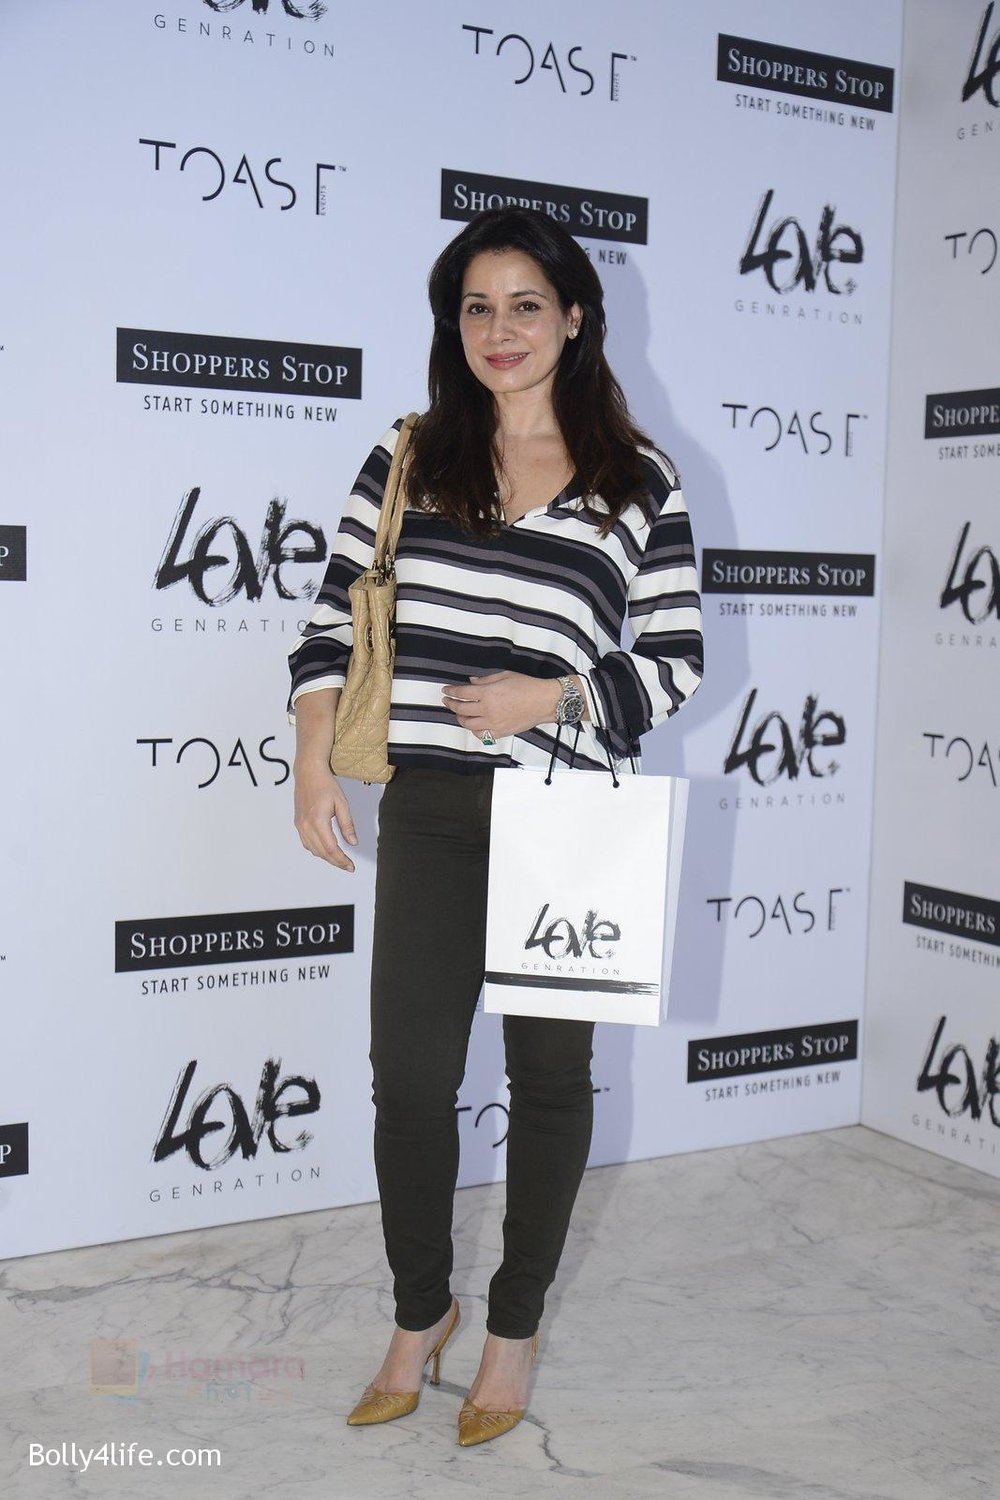 Neelam-Kothari-at-Love-Generation-launch-at-Shoppers-Stop-on-7th-Oct-2016-75.jpg